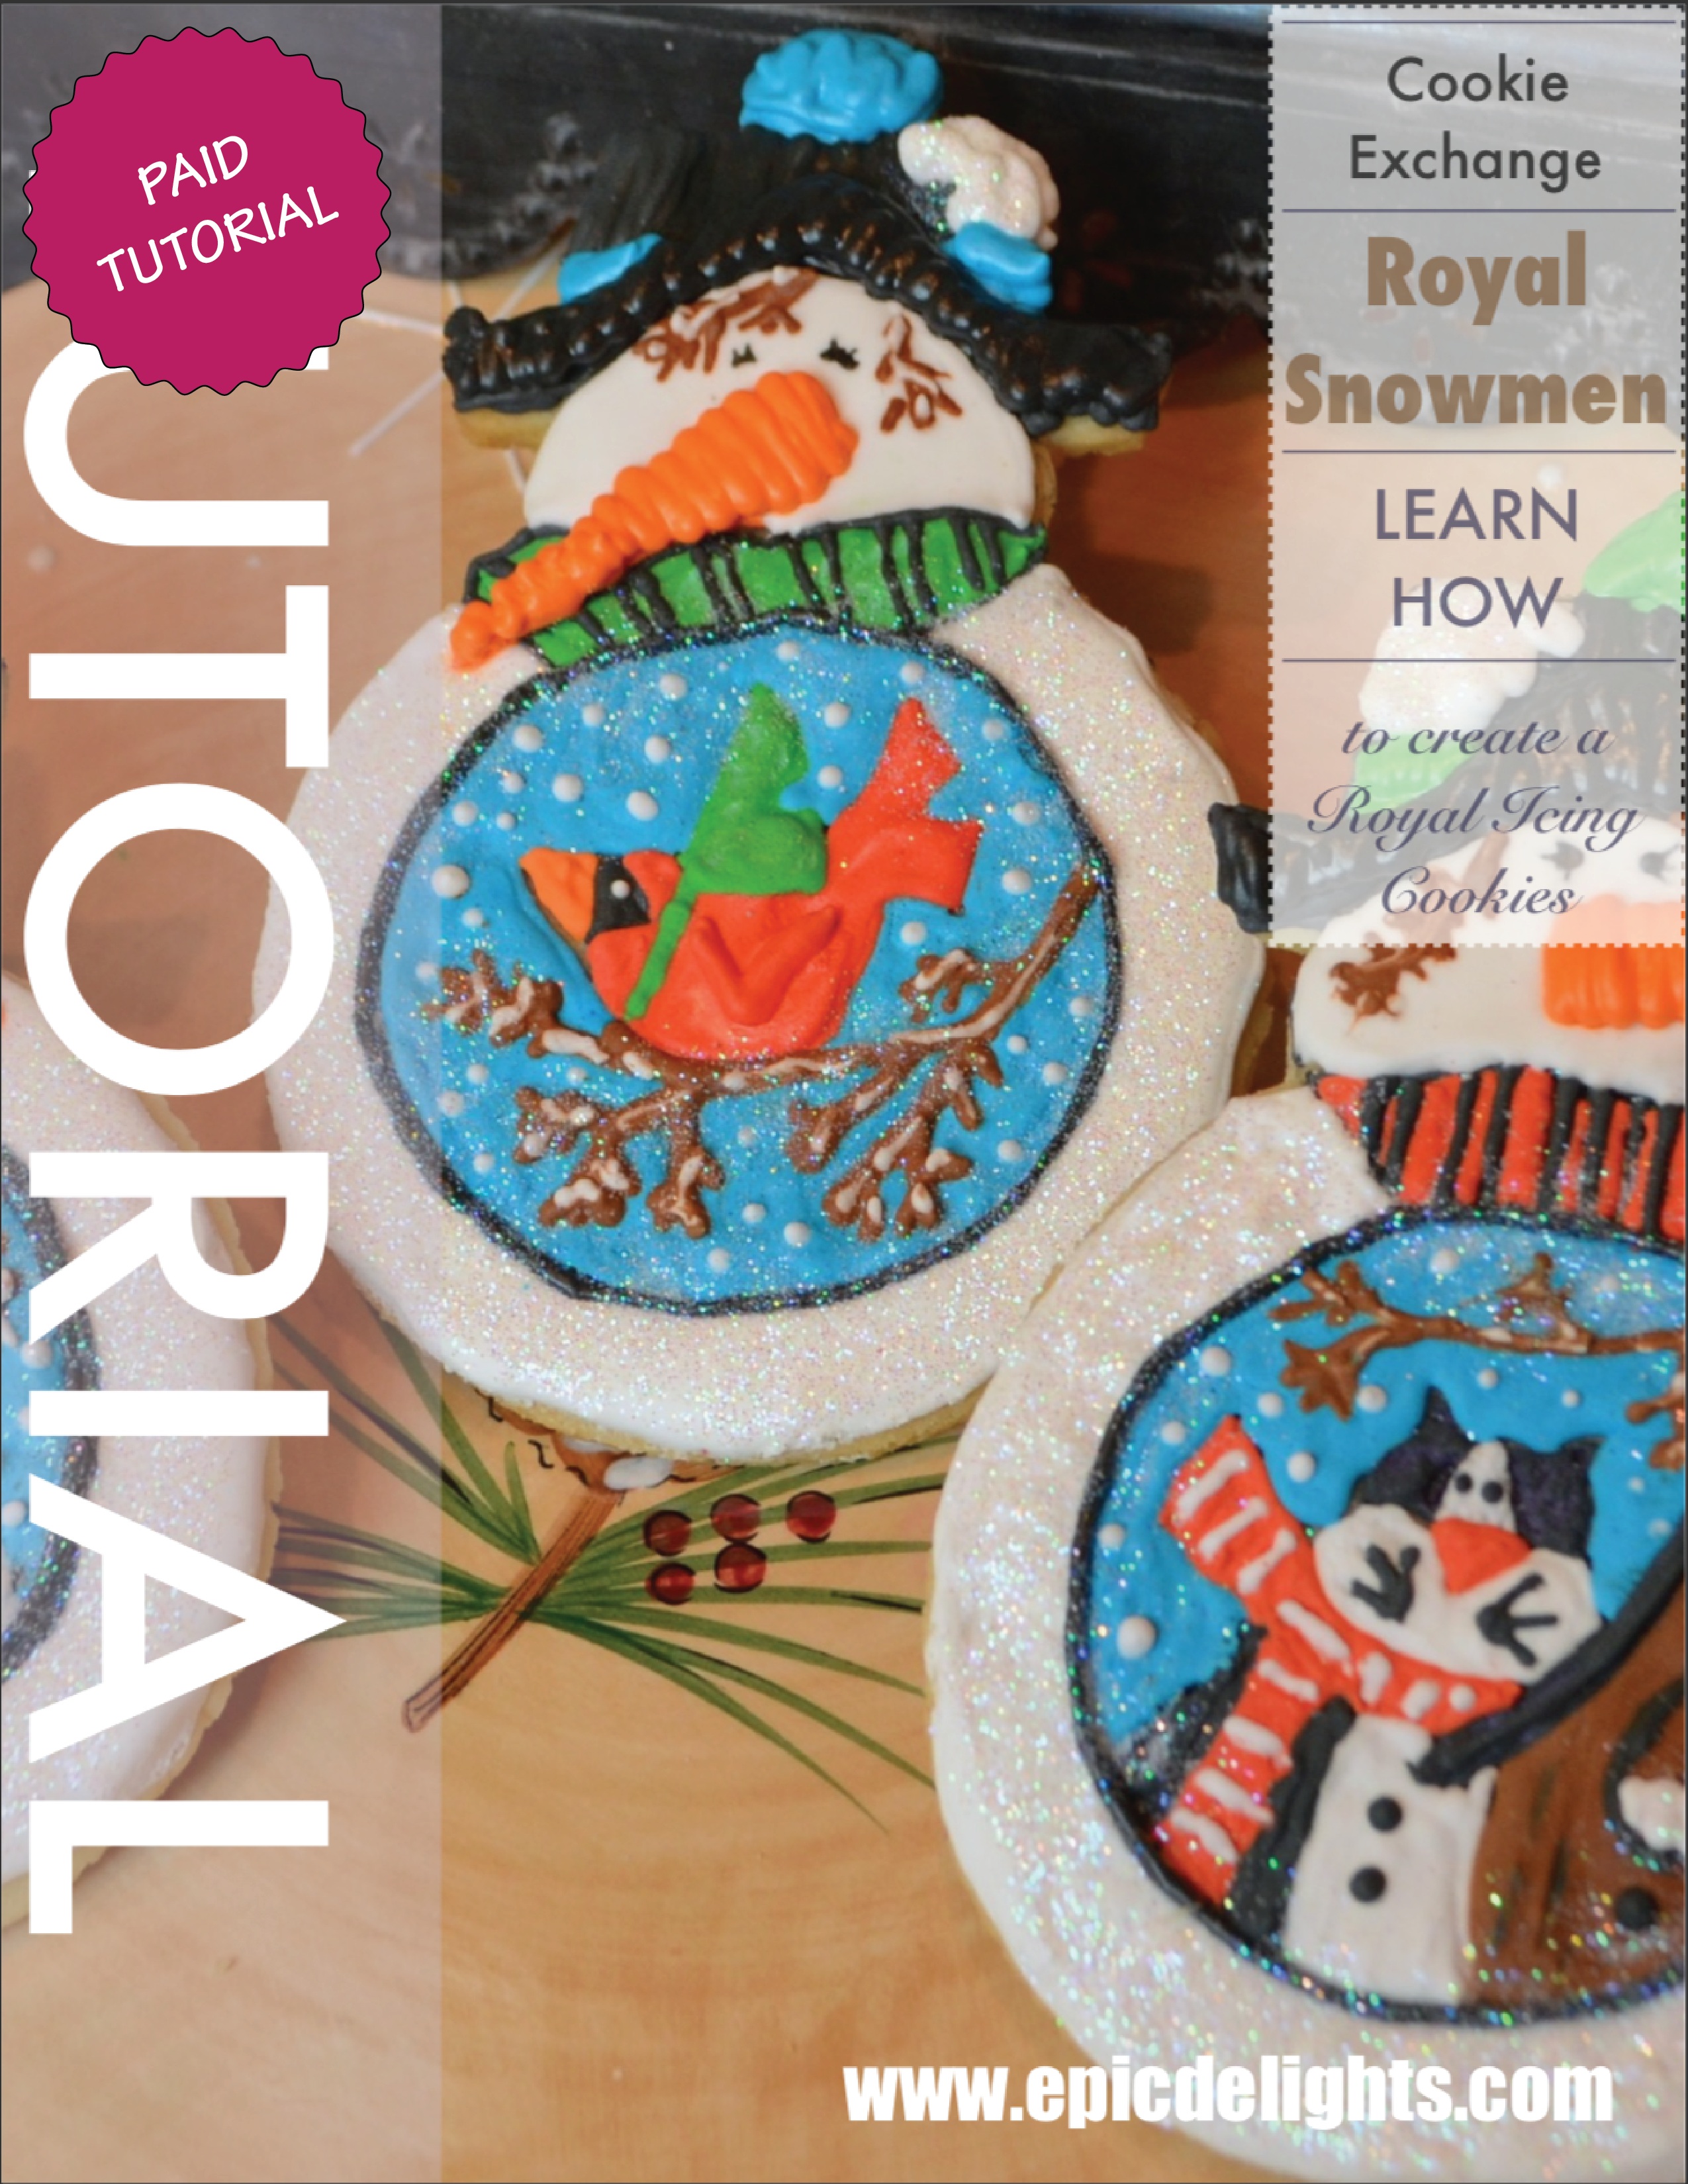 Royal Icing Snowman Cookie